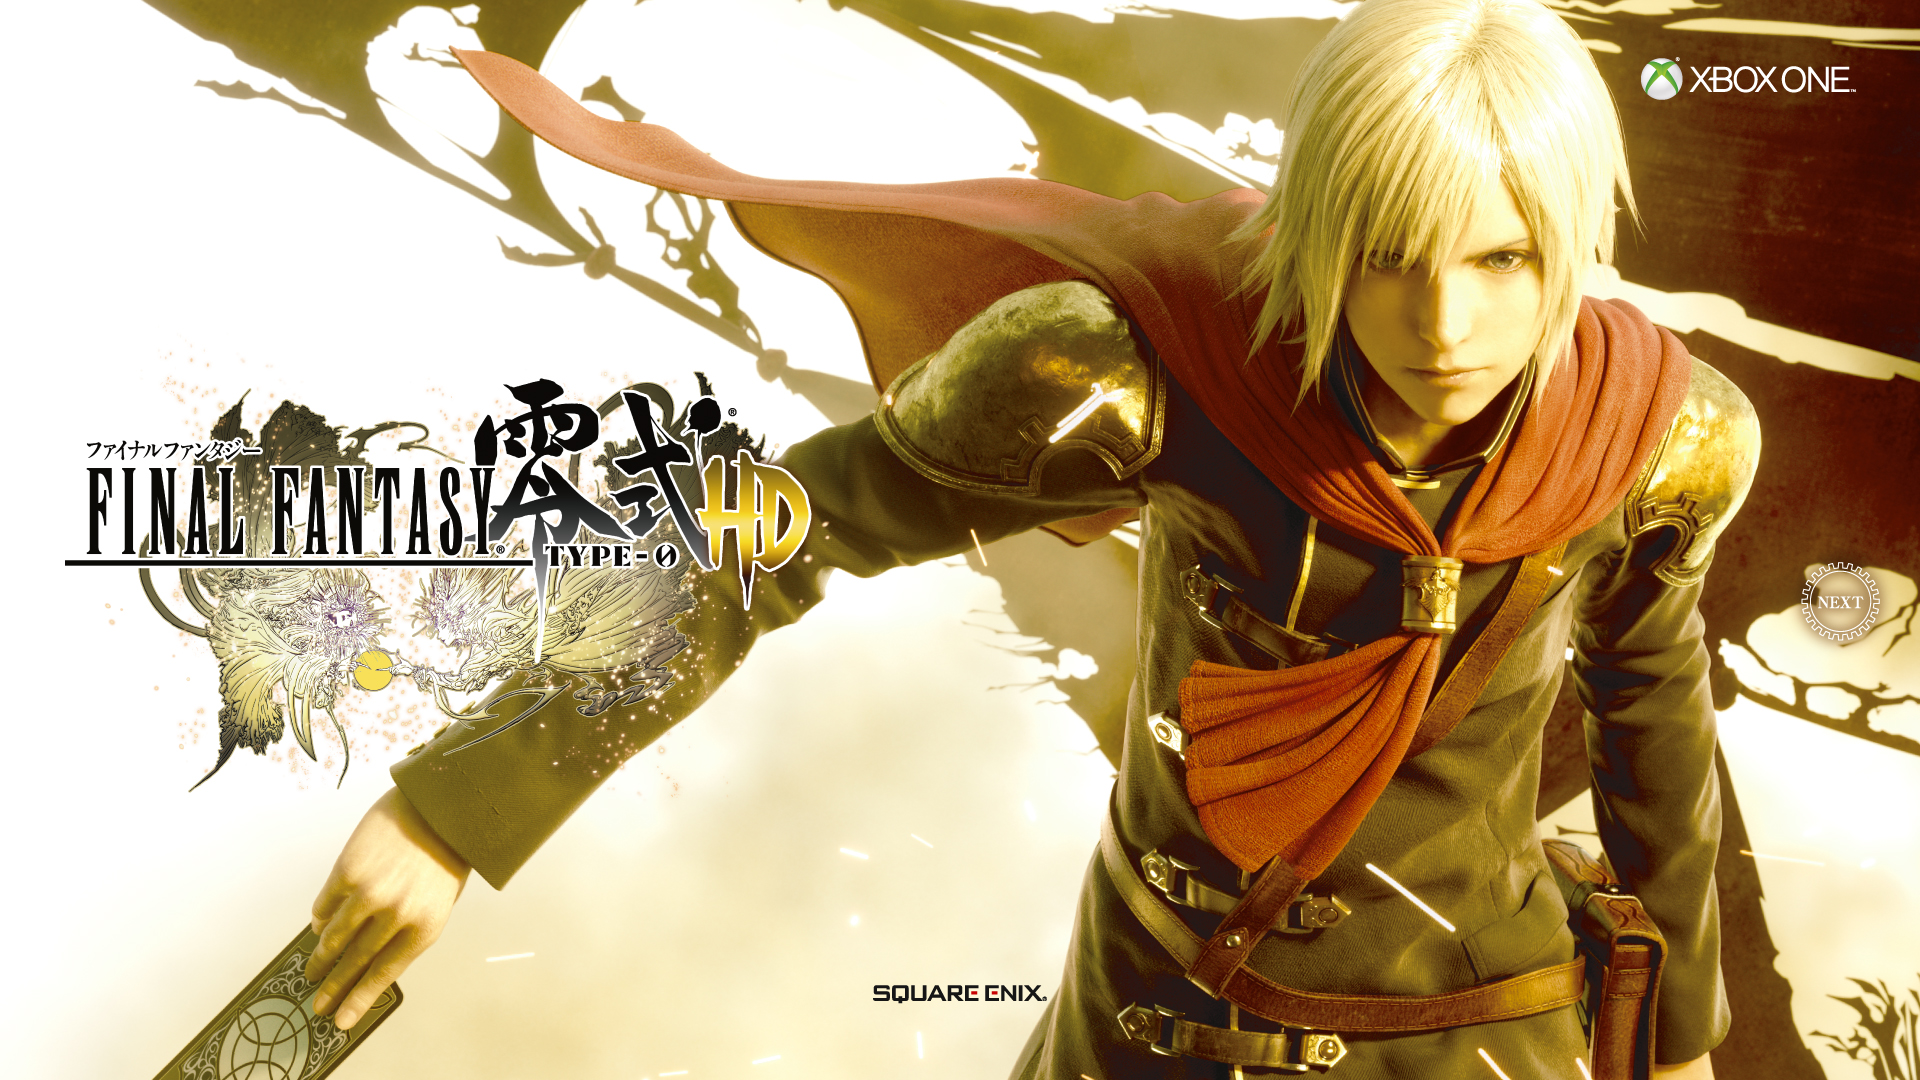 XBOX ONE FINAL FANTASYHD SQUARE ENIX